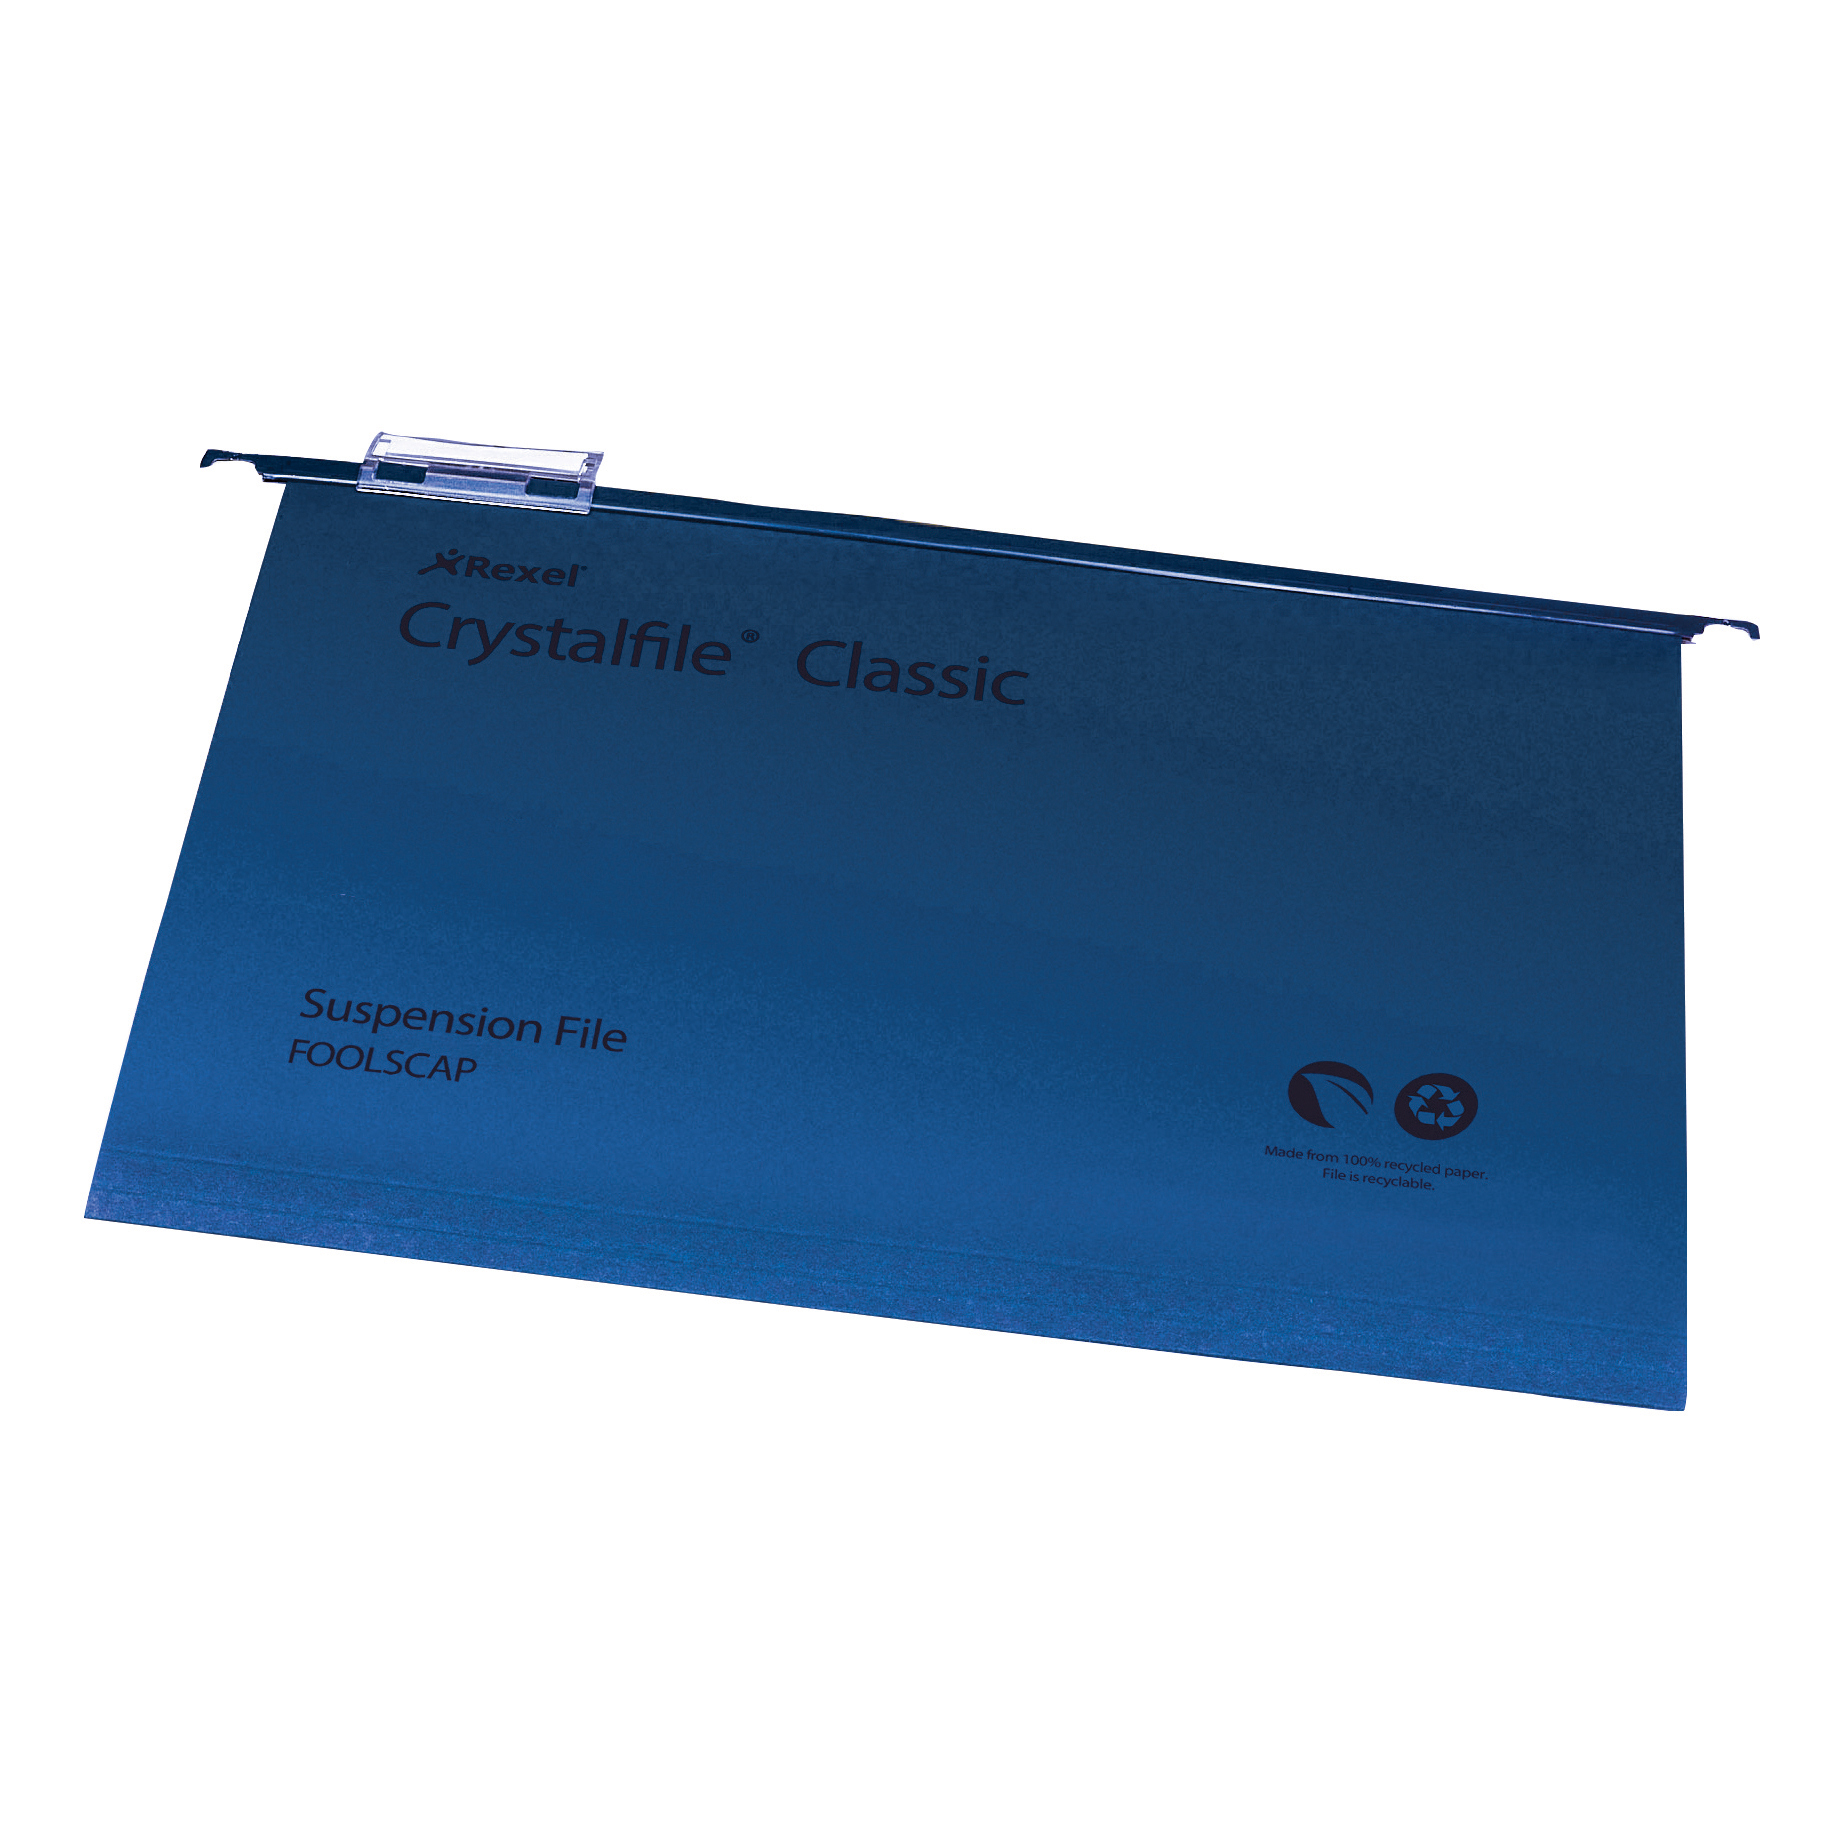 Suspension File Rexel Crystalfile Classic Suspension File Manilla V-base Foolscap Blue Ref 78143 Pack 50